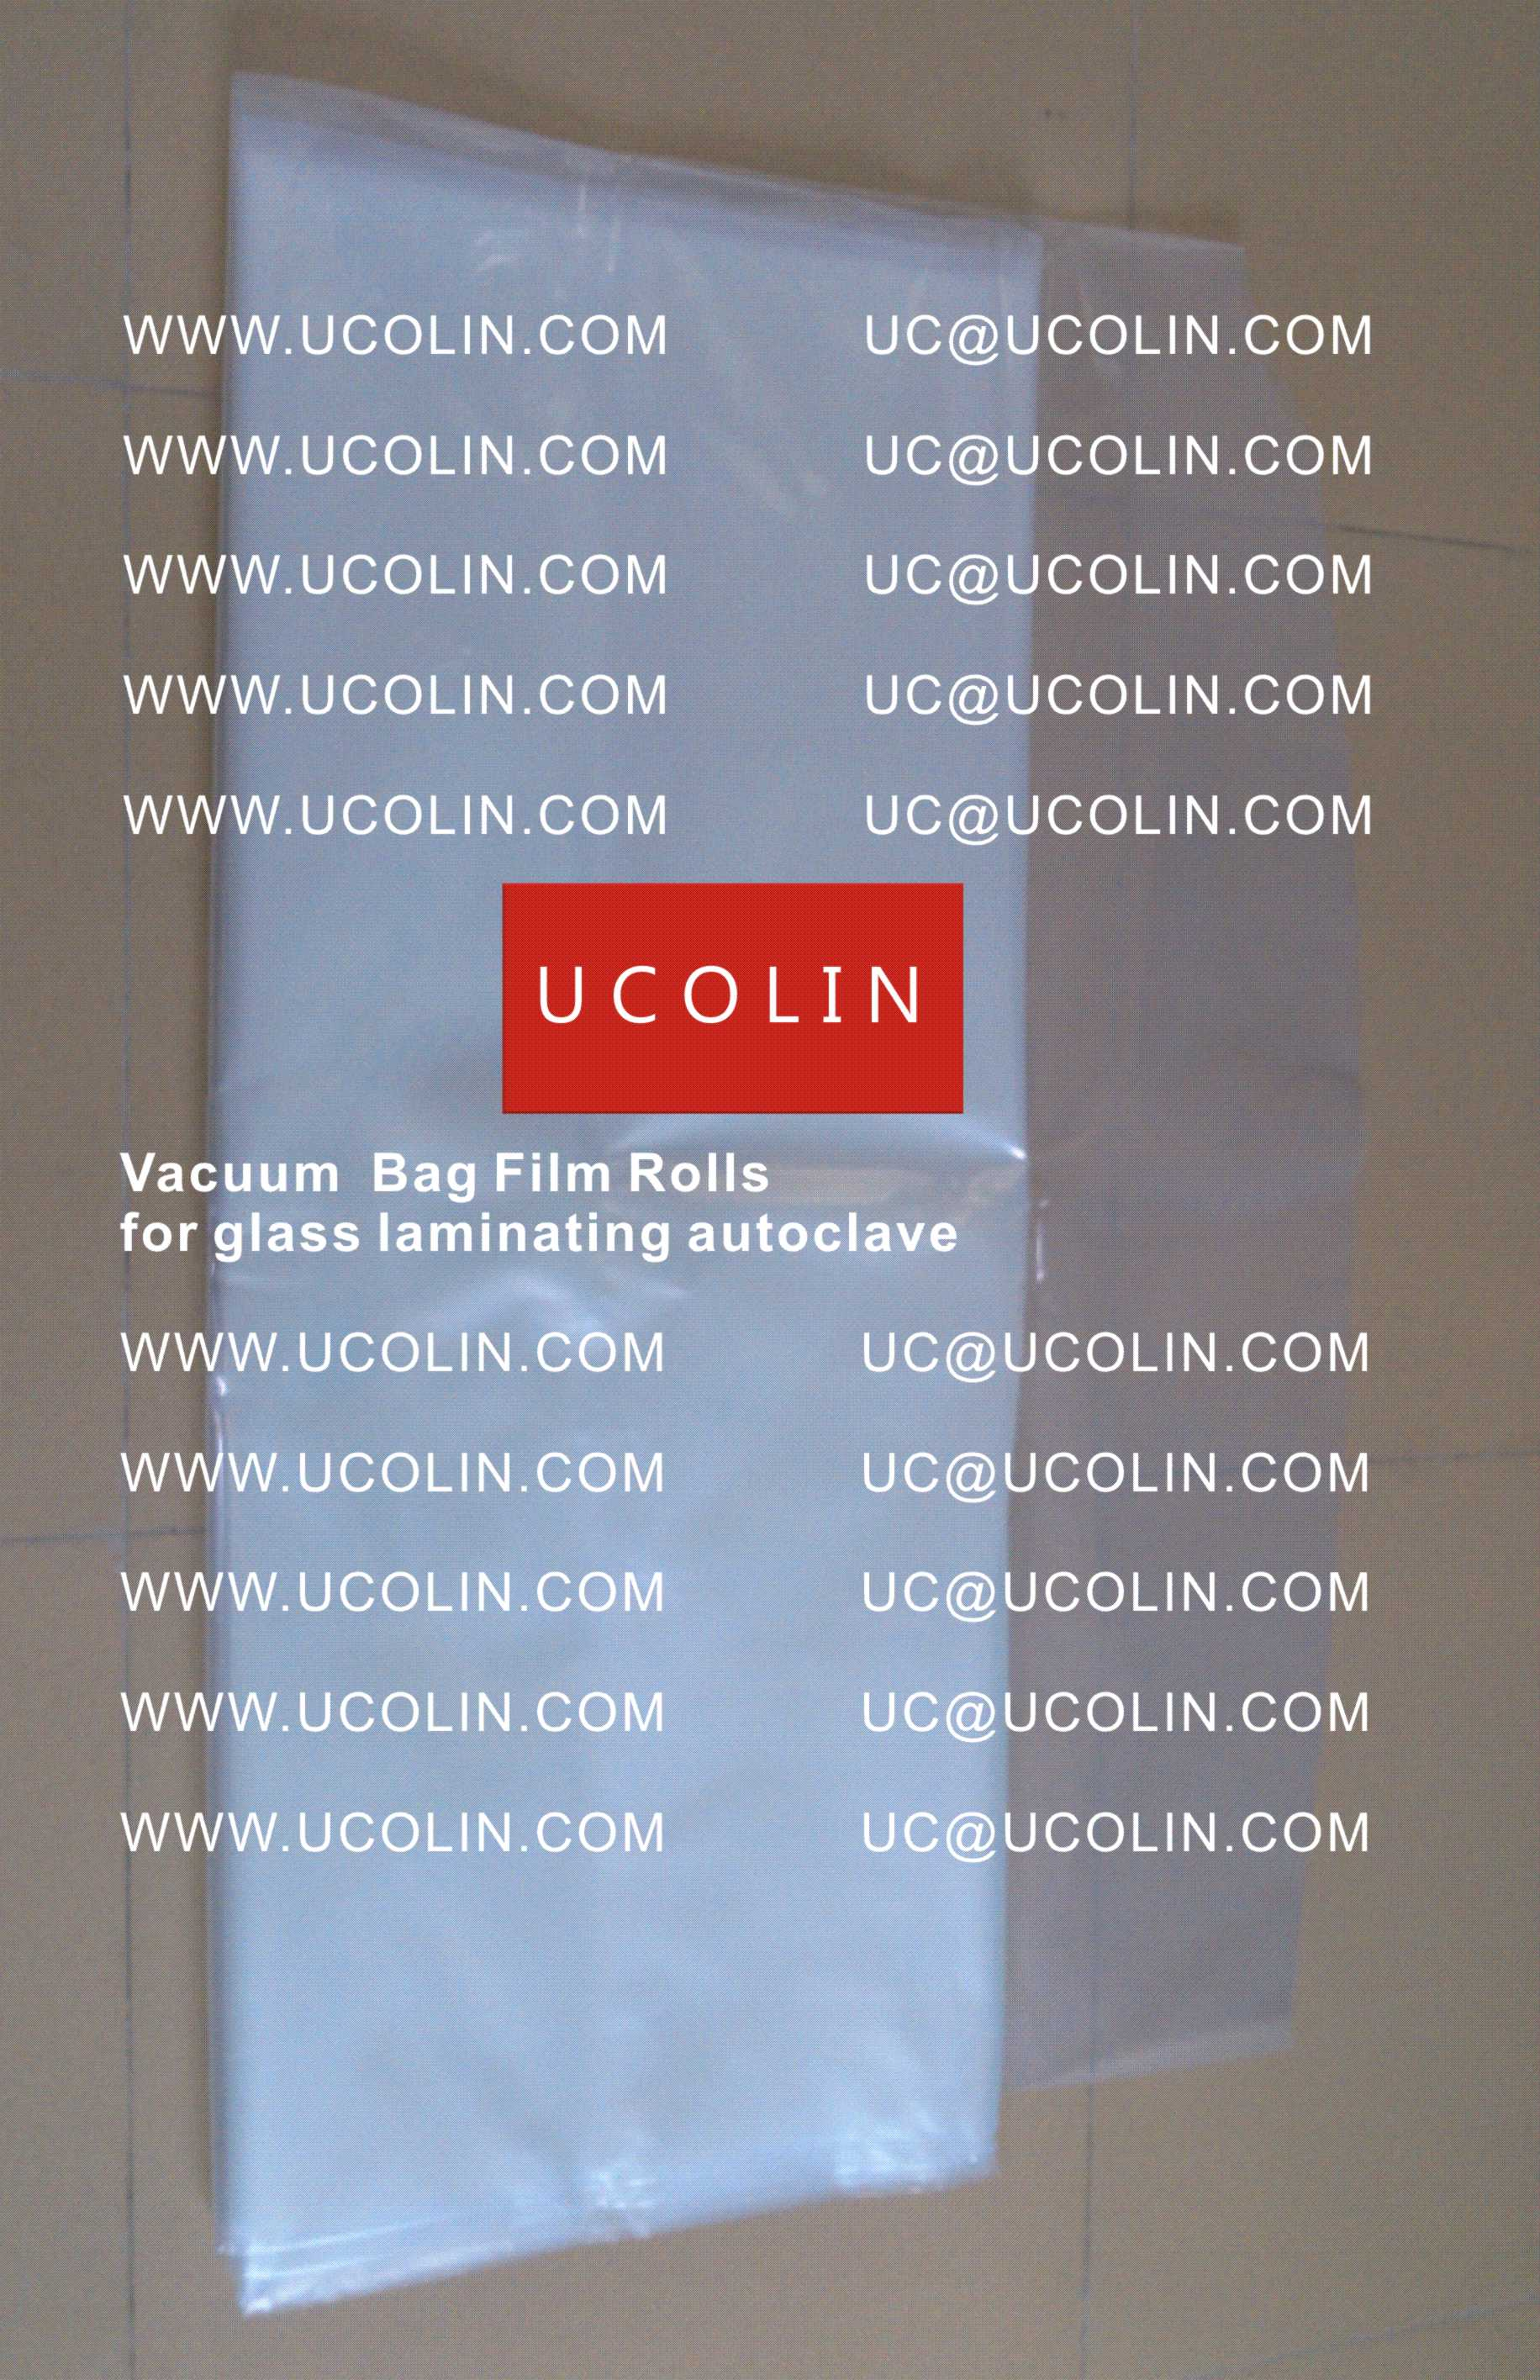 009 Vacuum Bag Film Rolls for Laminating Curved Glass in Autoclave